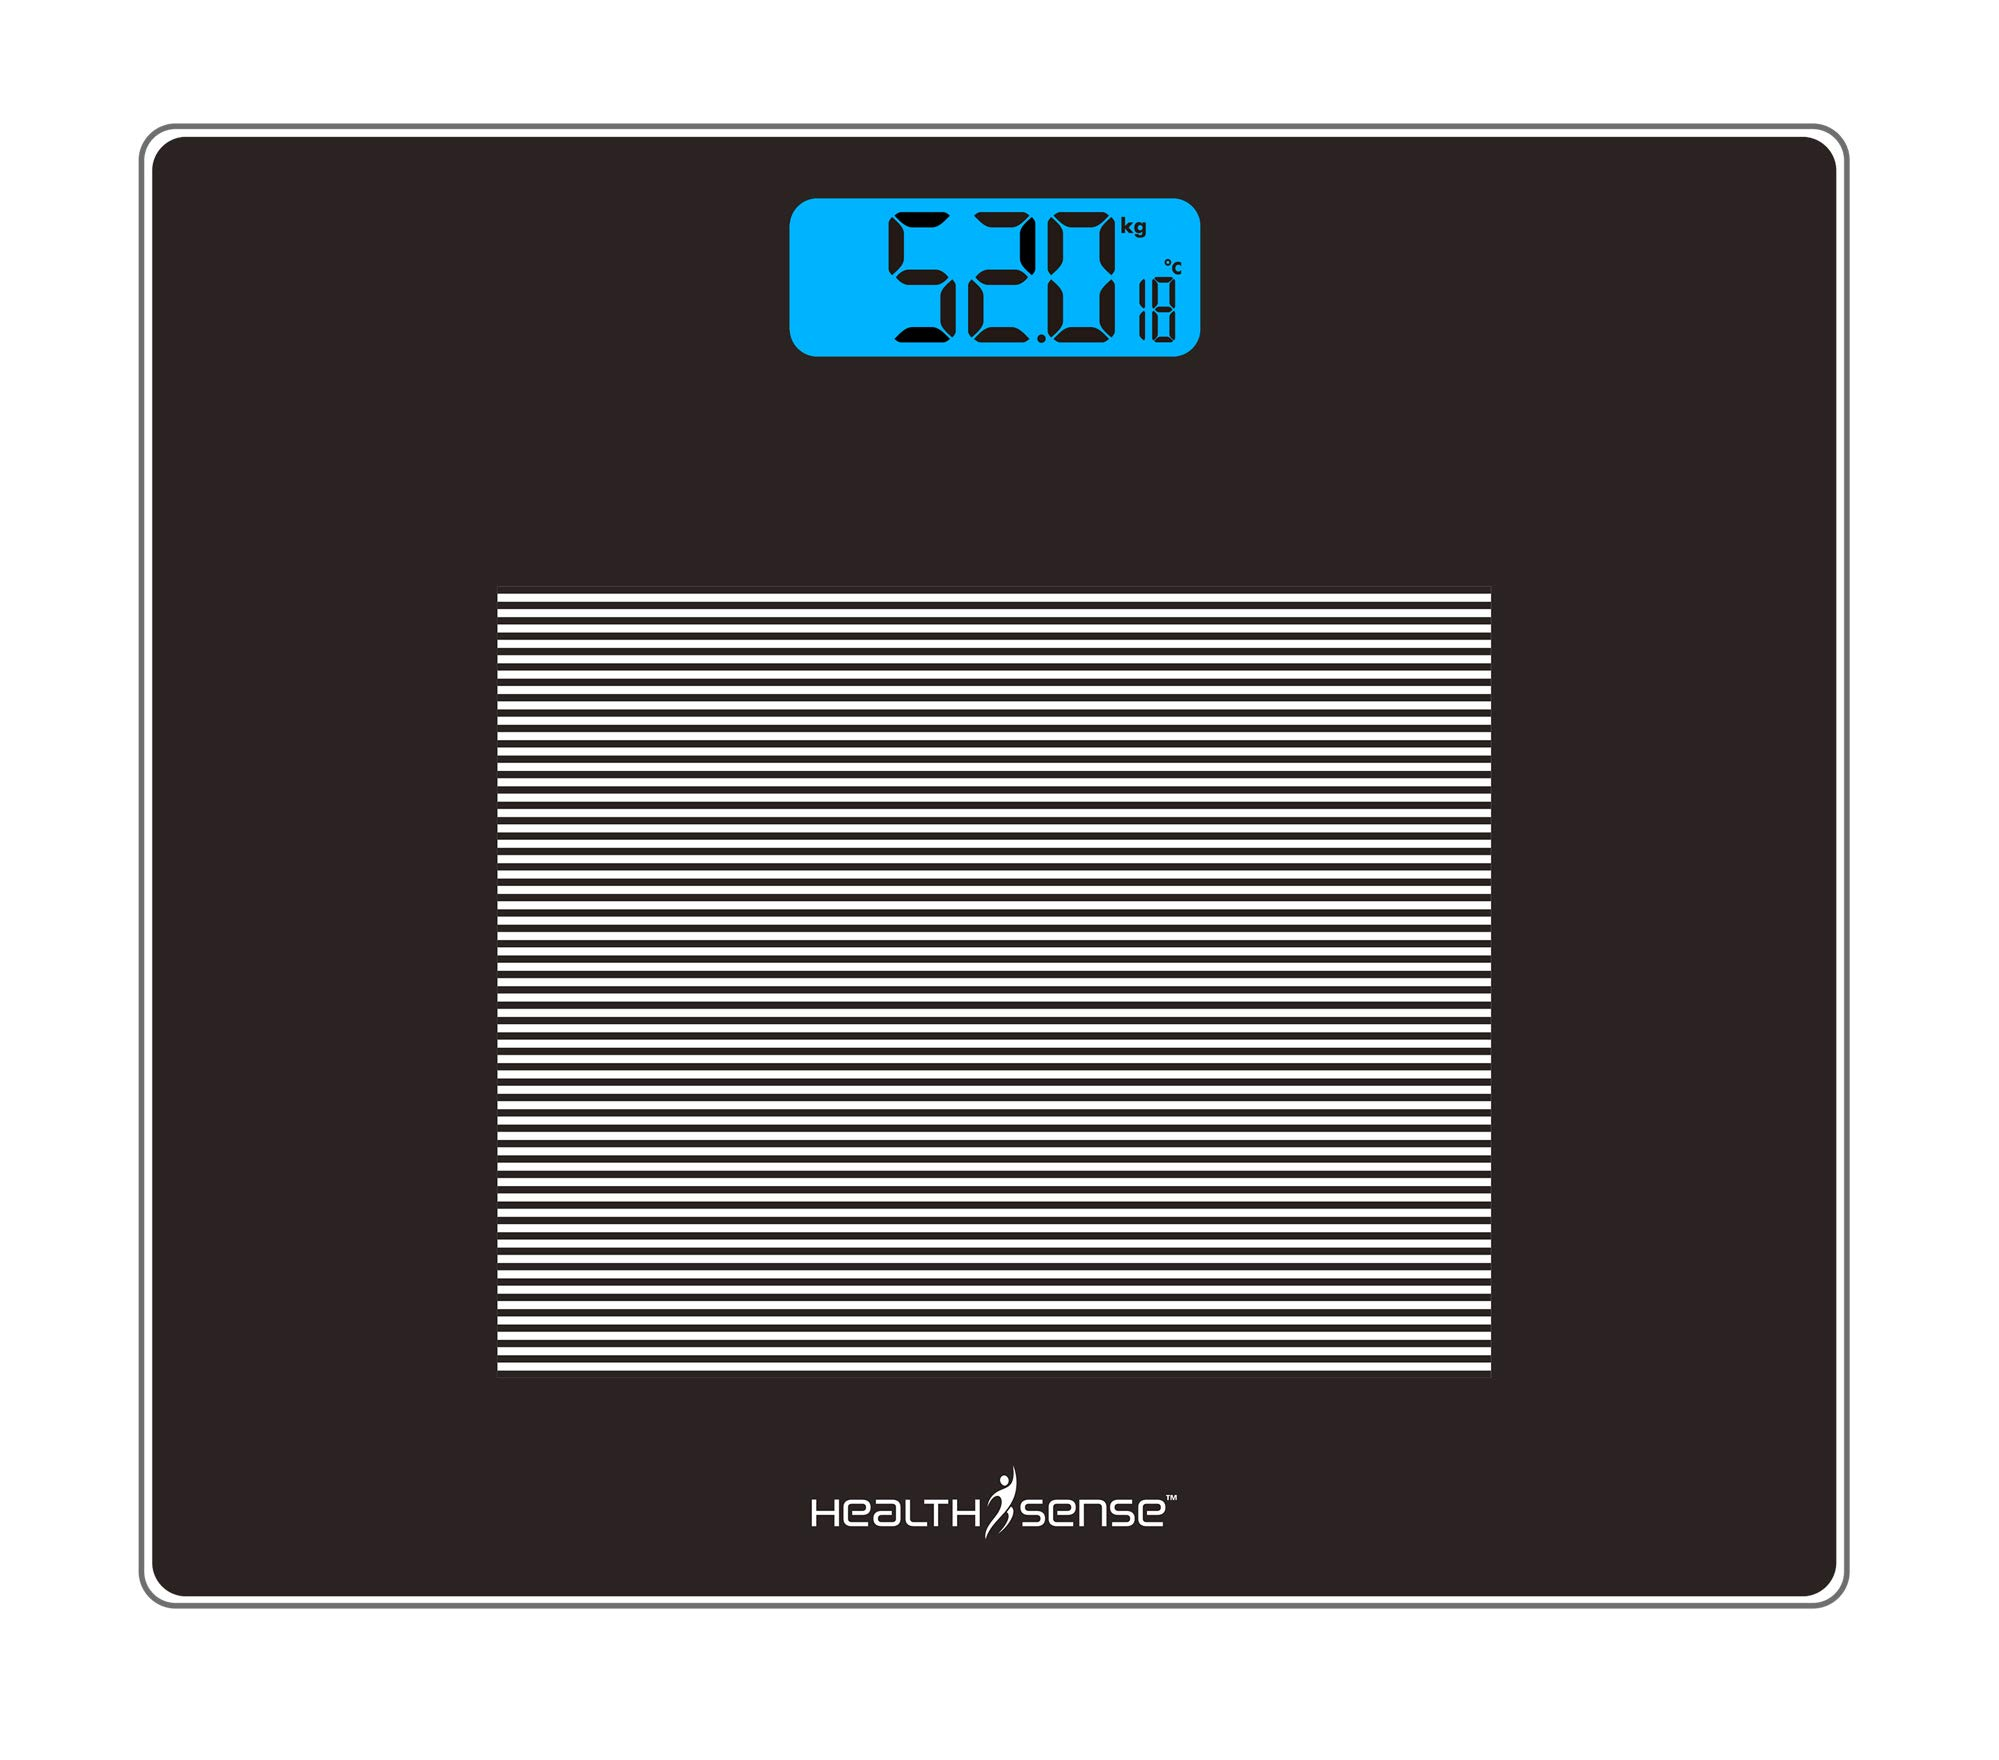 HealthSense Dura-Glass Digital Personal Body Weighing Scale with Temperature and Step-On Technology (Zebra Black) product image